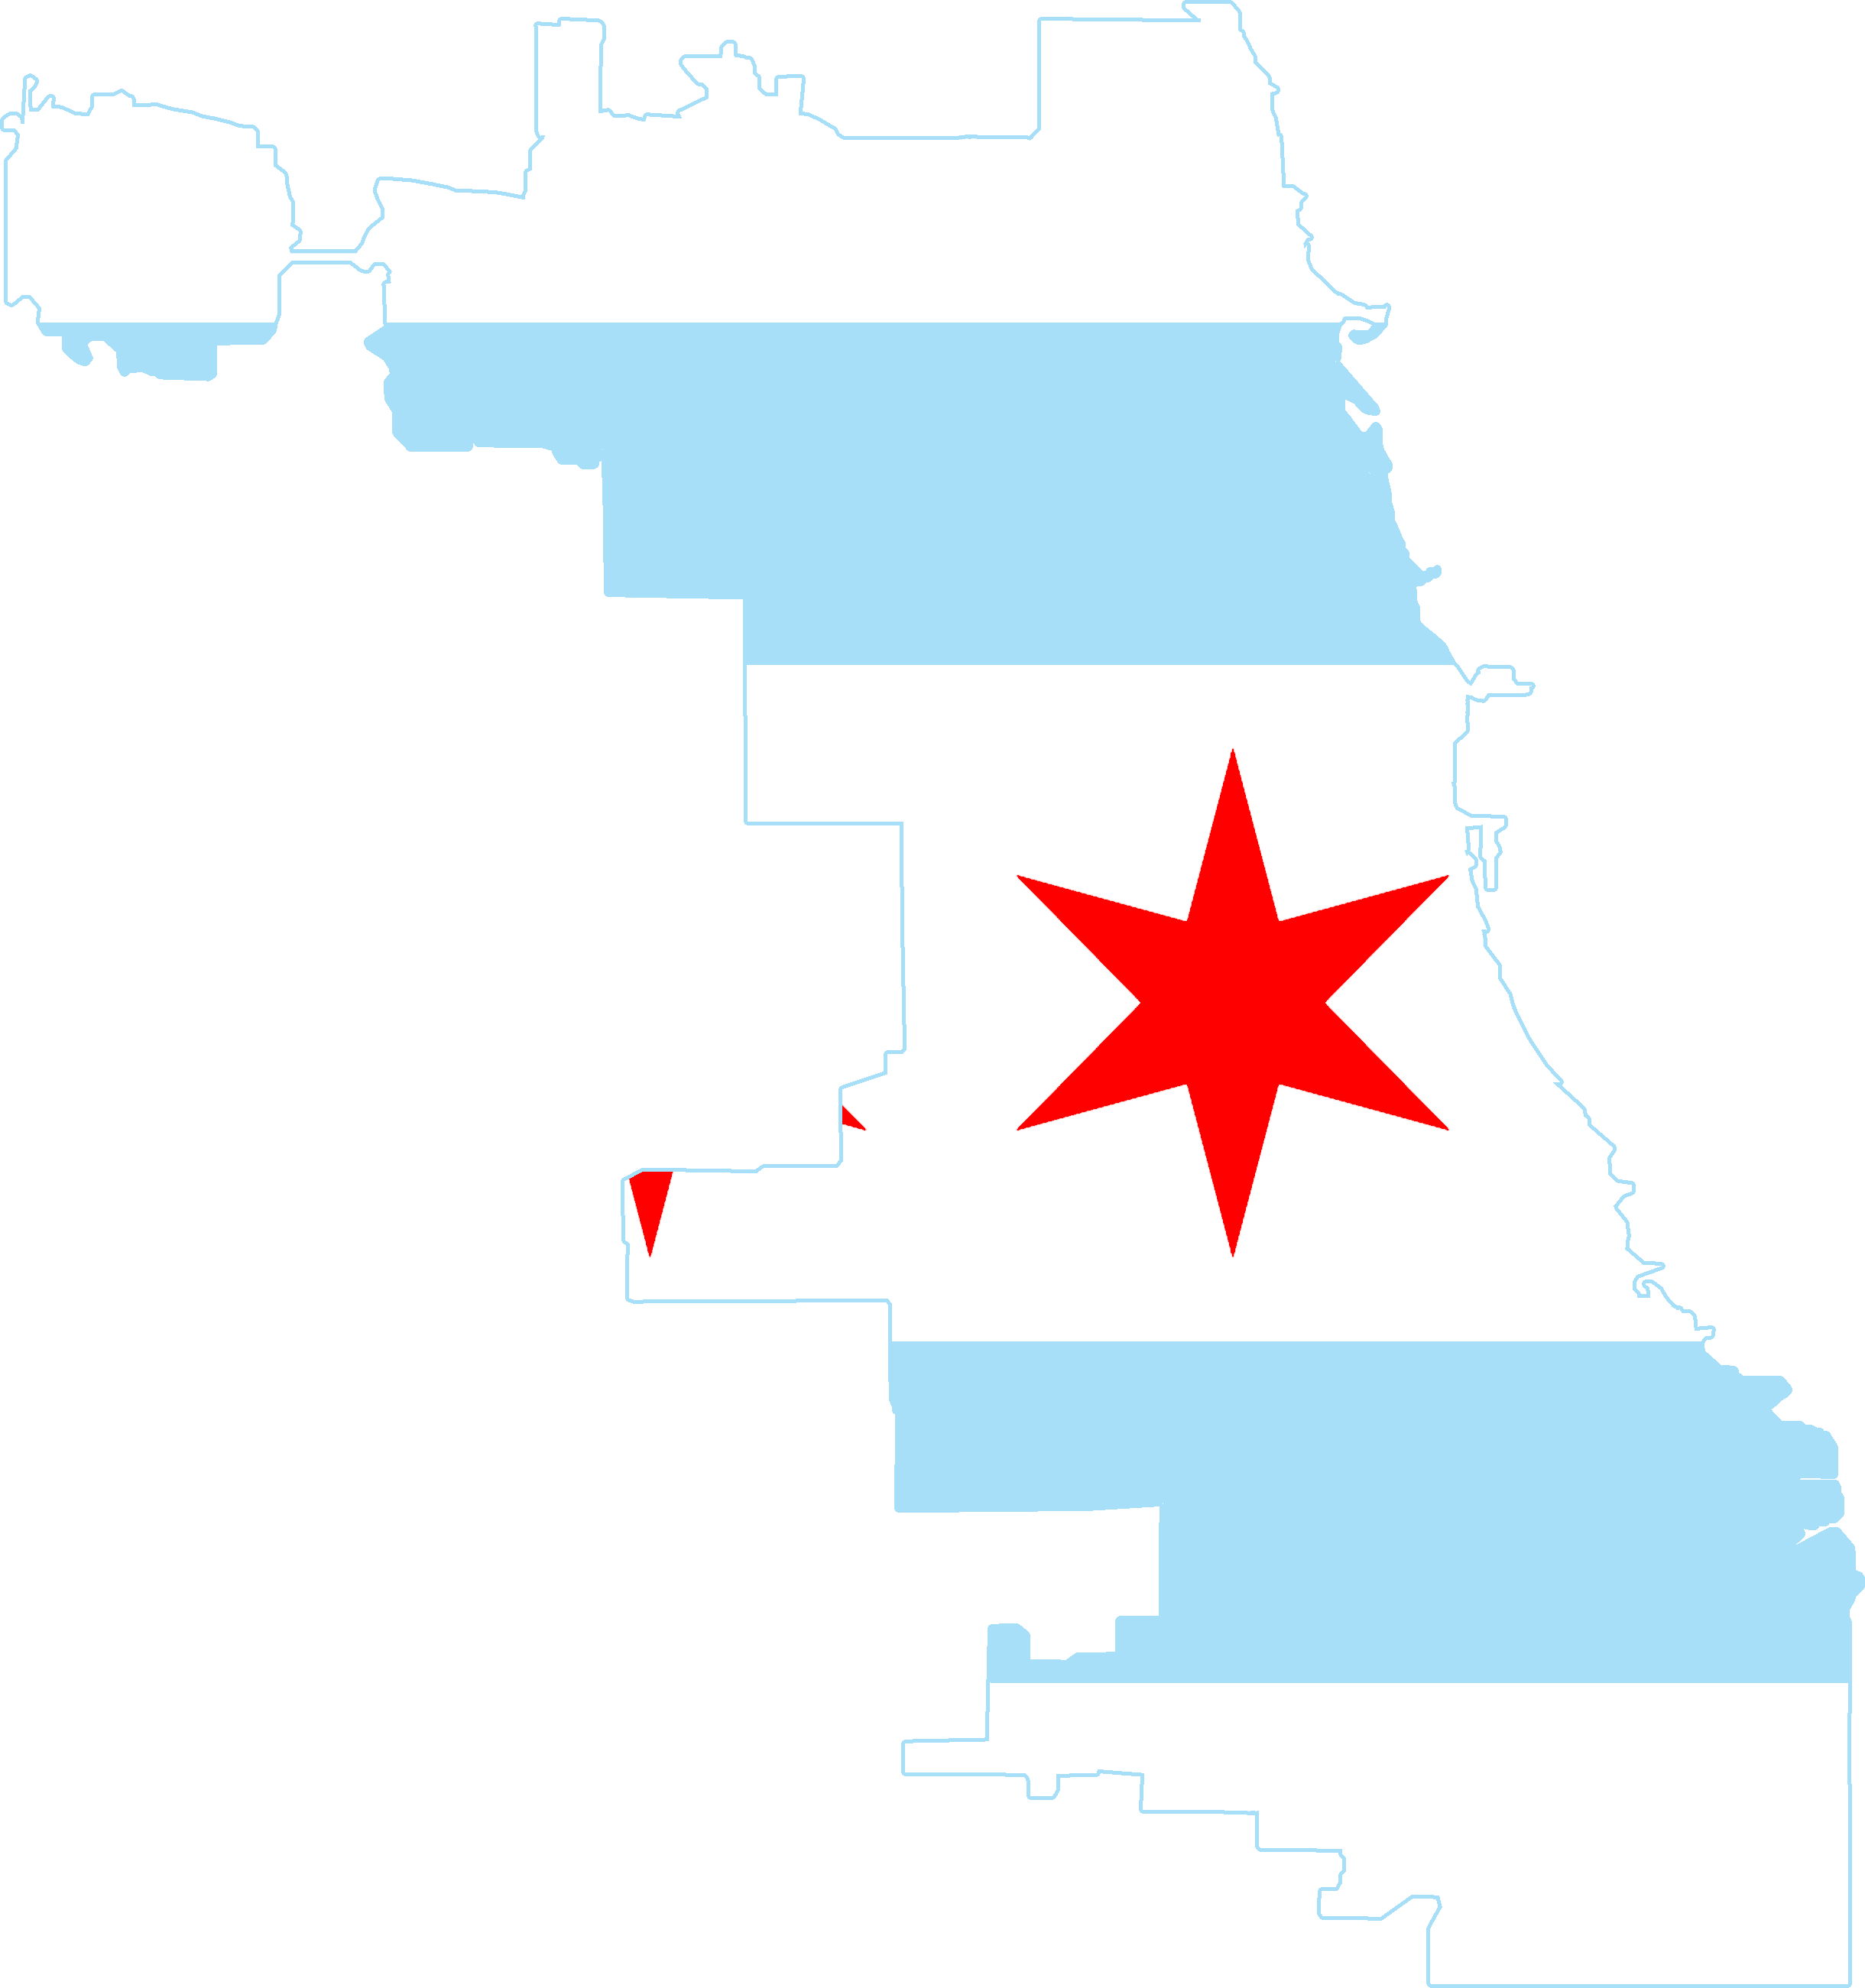 2440x2601 19 Chicago Vector Map Huge Freebie! Download For Powerpoint